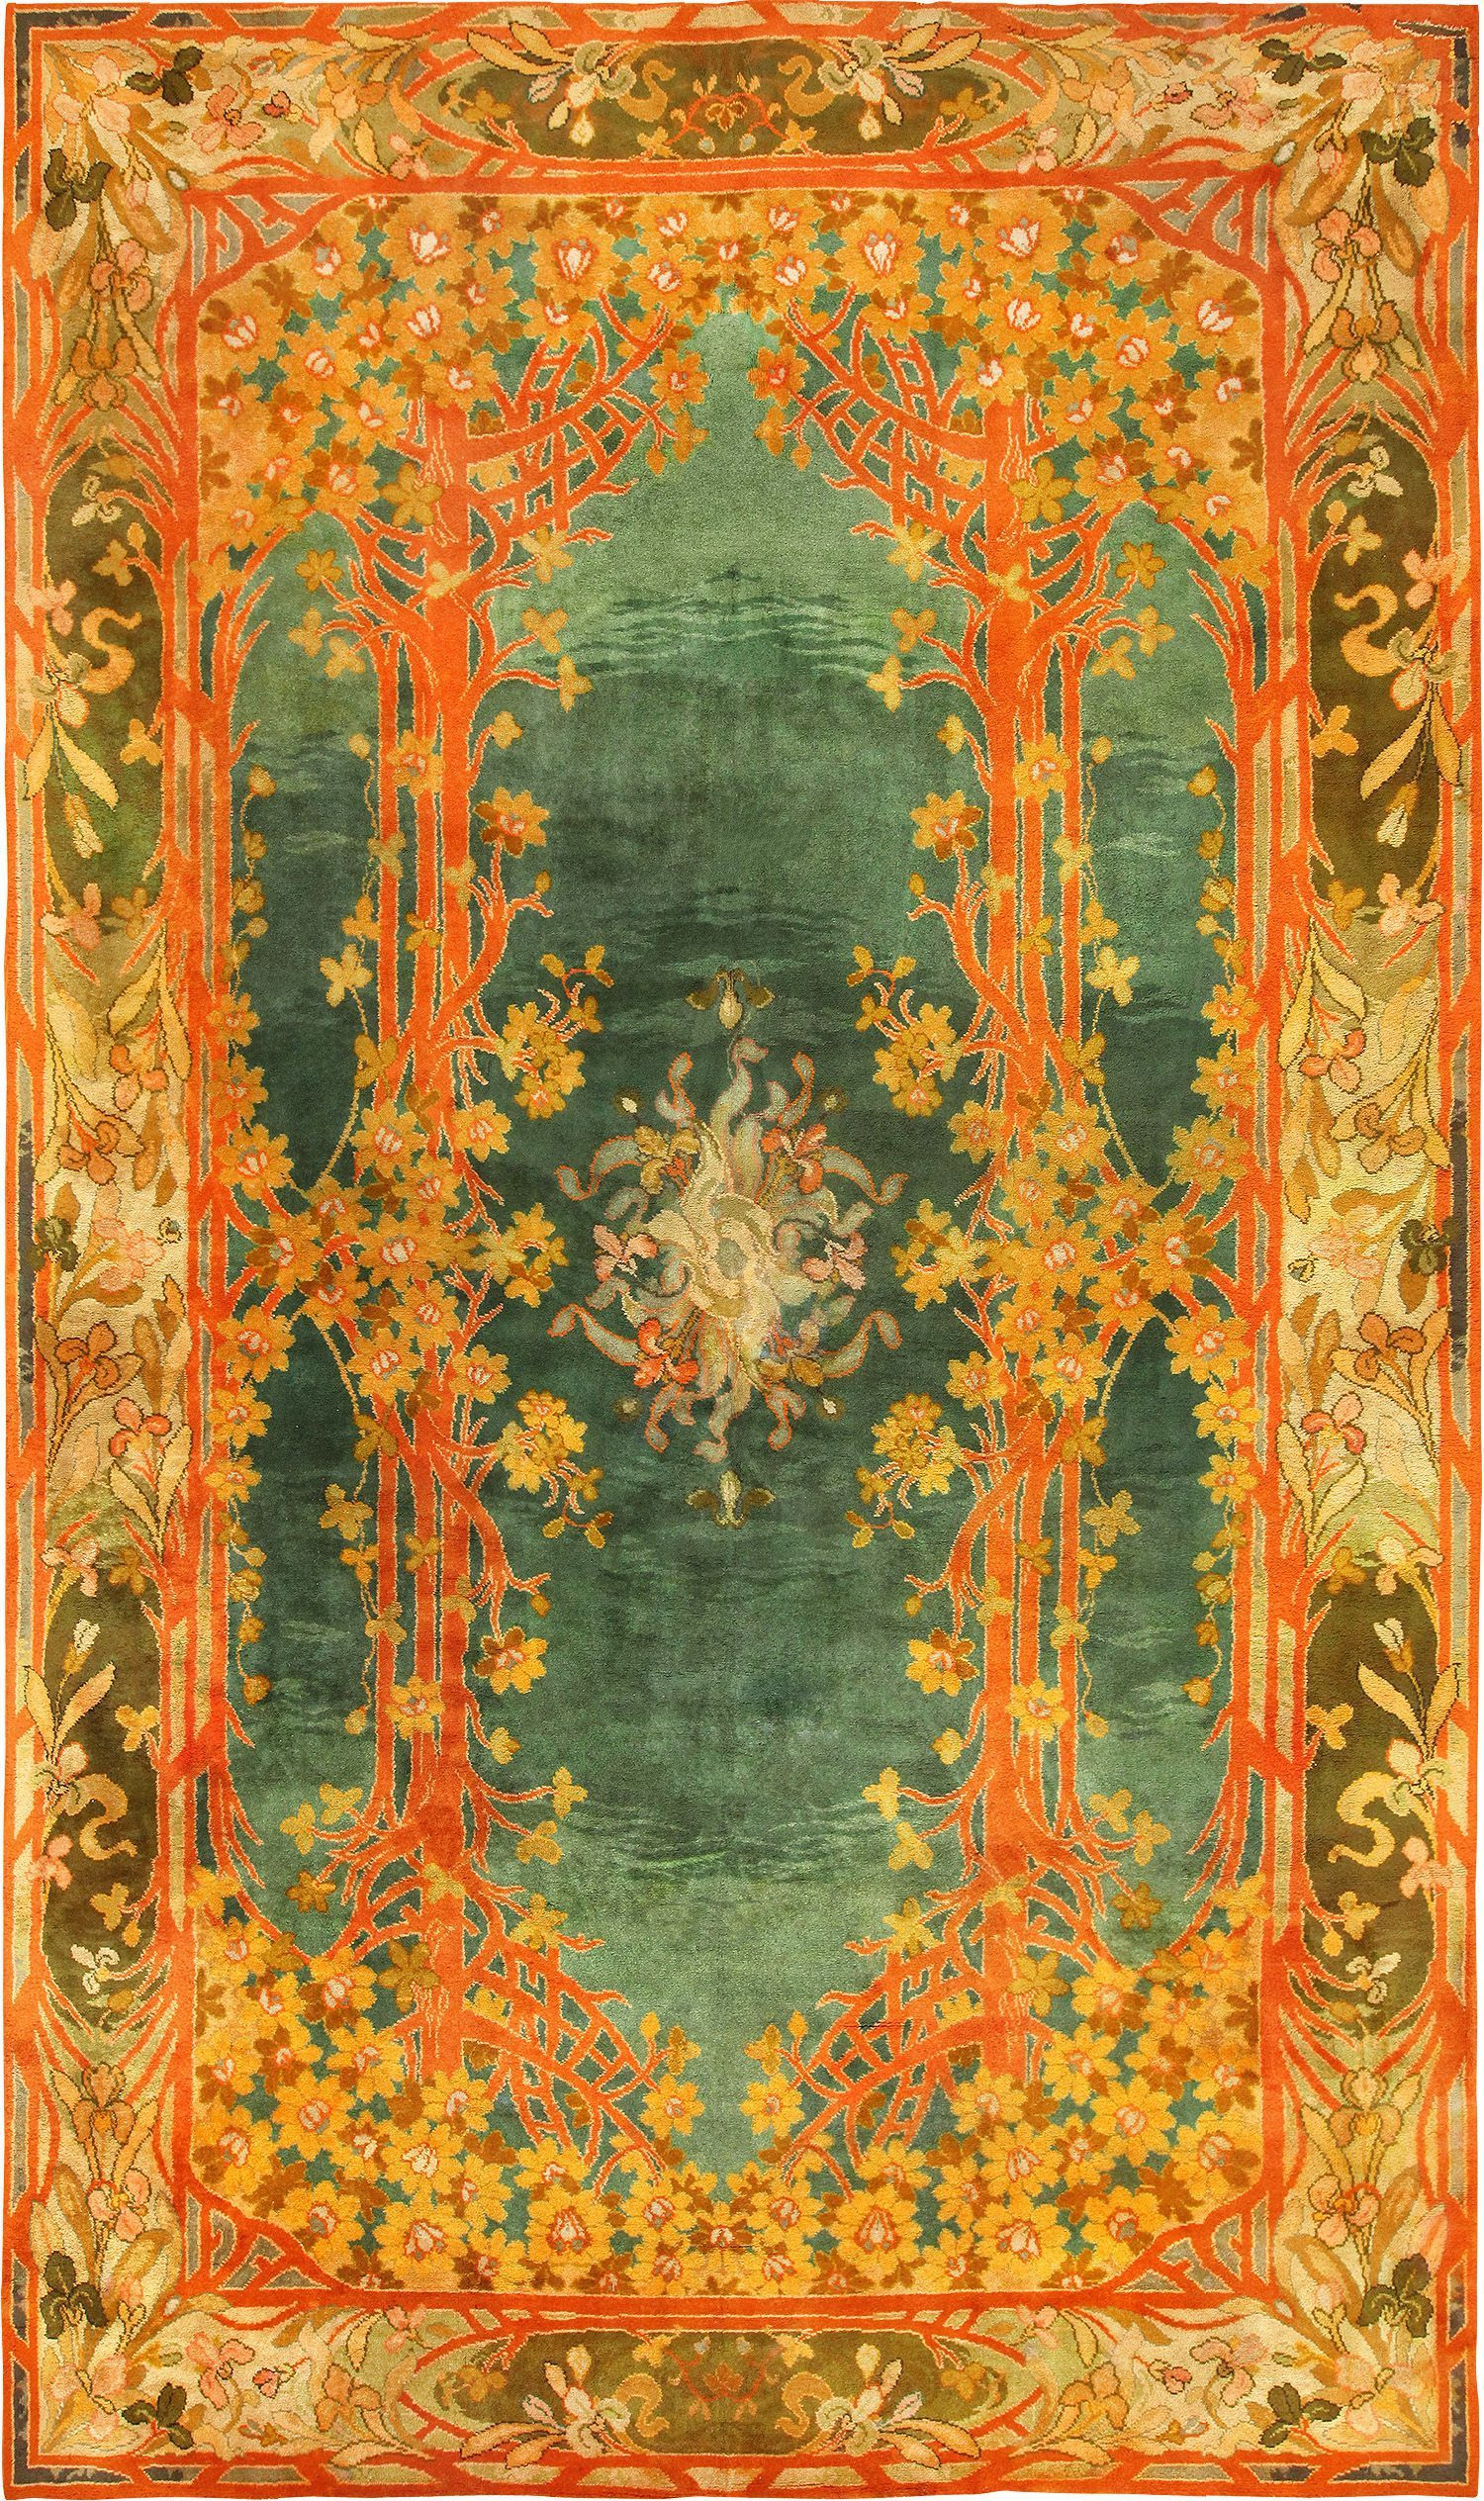 Long and Narrow Antique Art Nouveau Irish Donegal Rug 49155